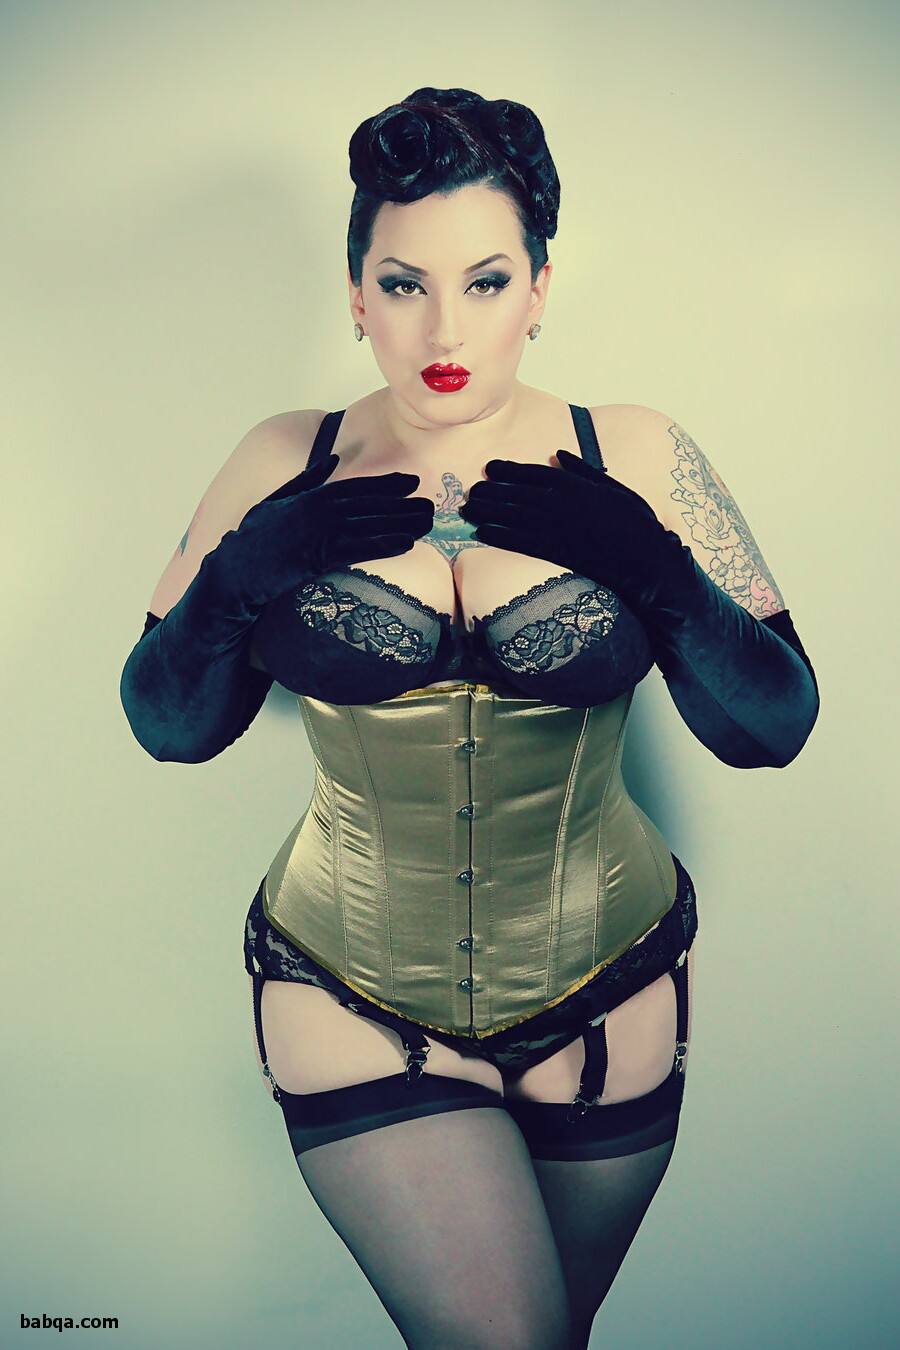 worn womens panties and what does a dominatrix wear